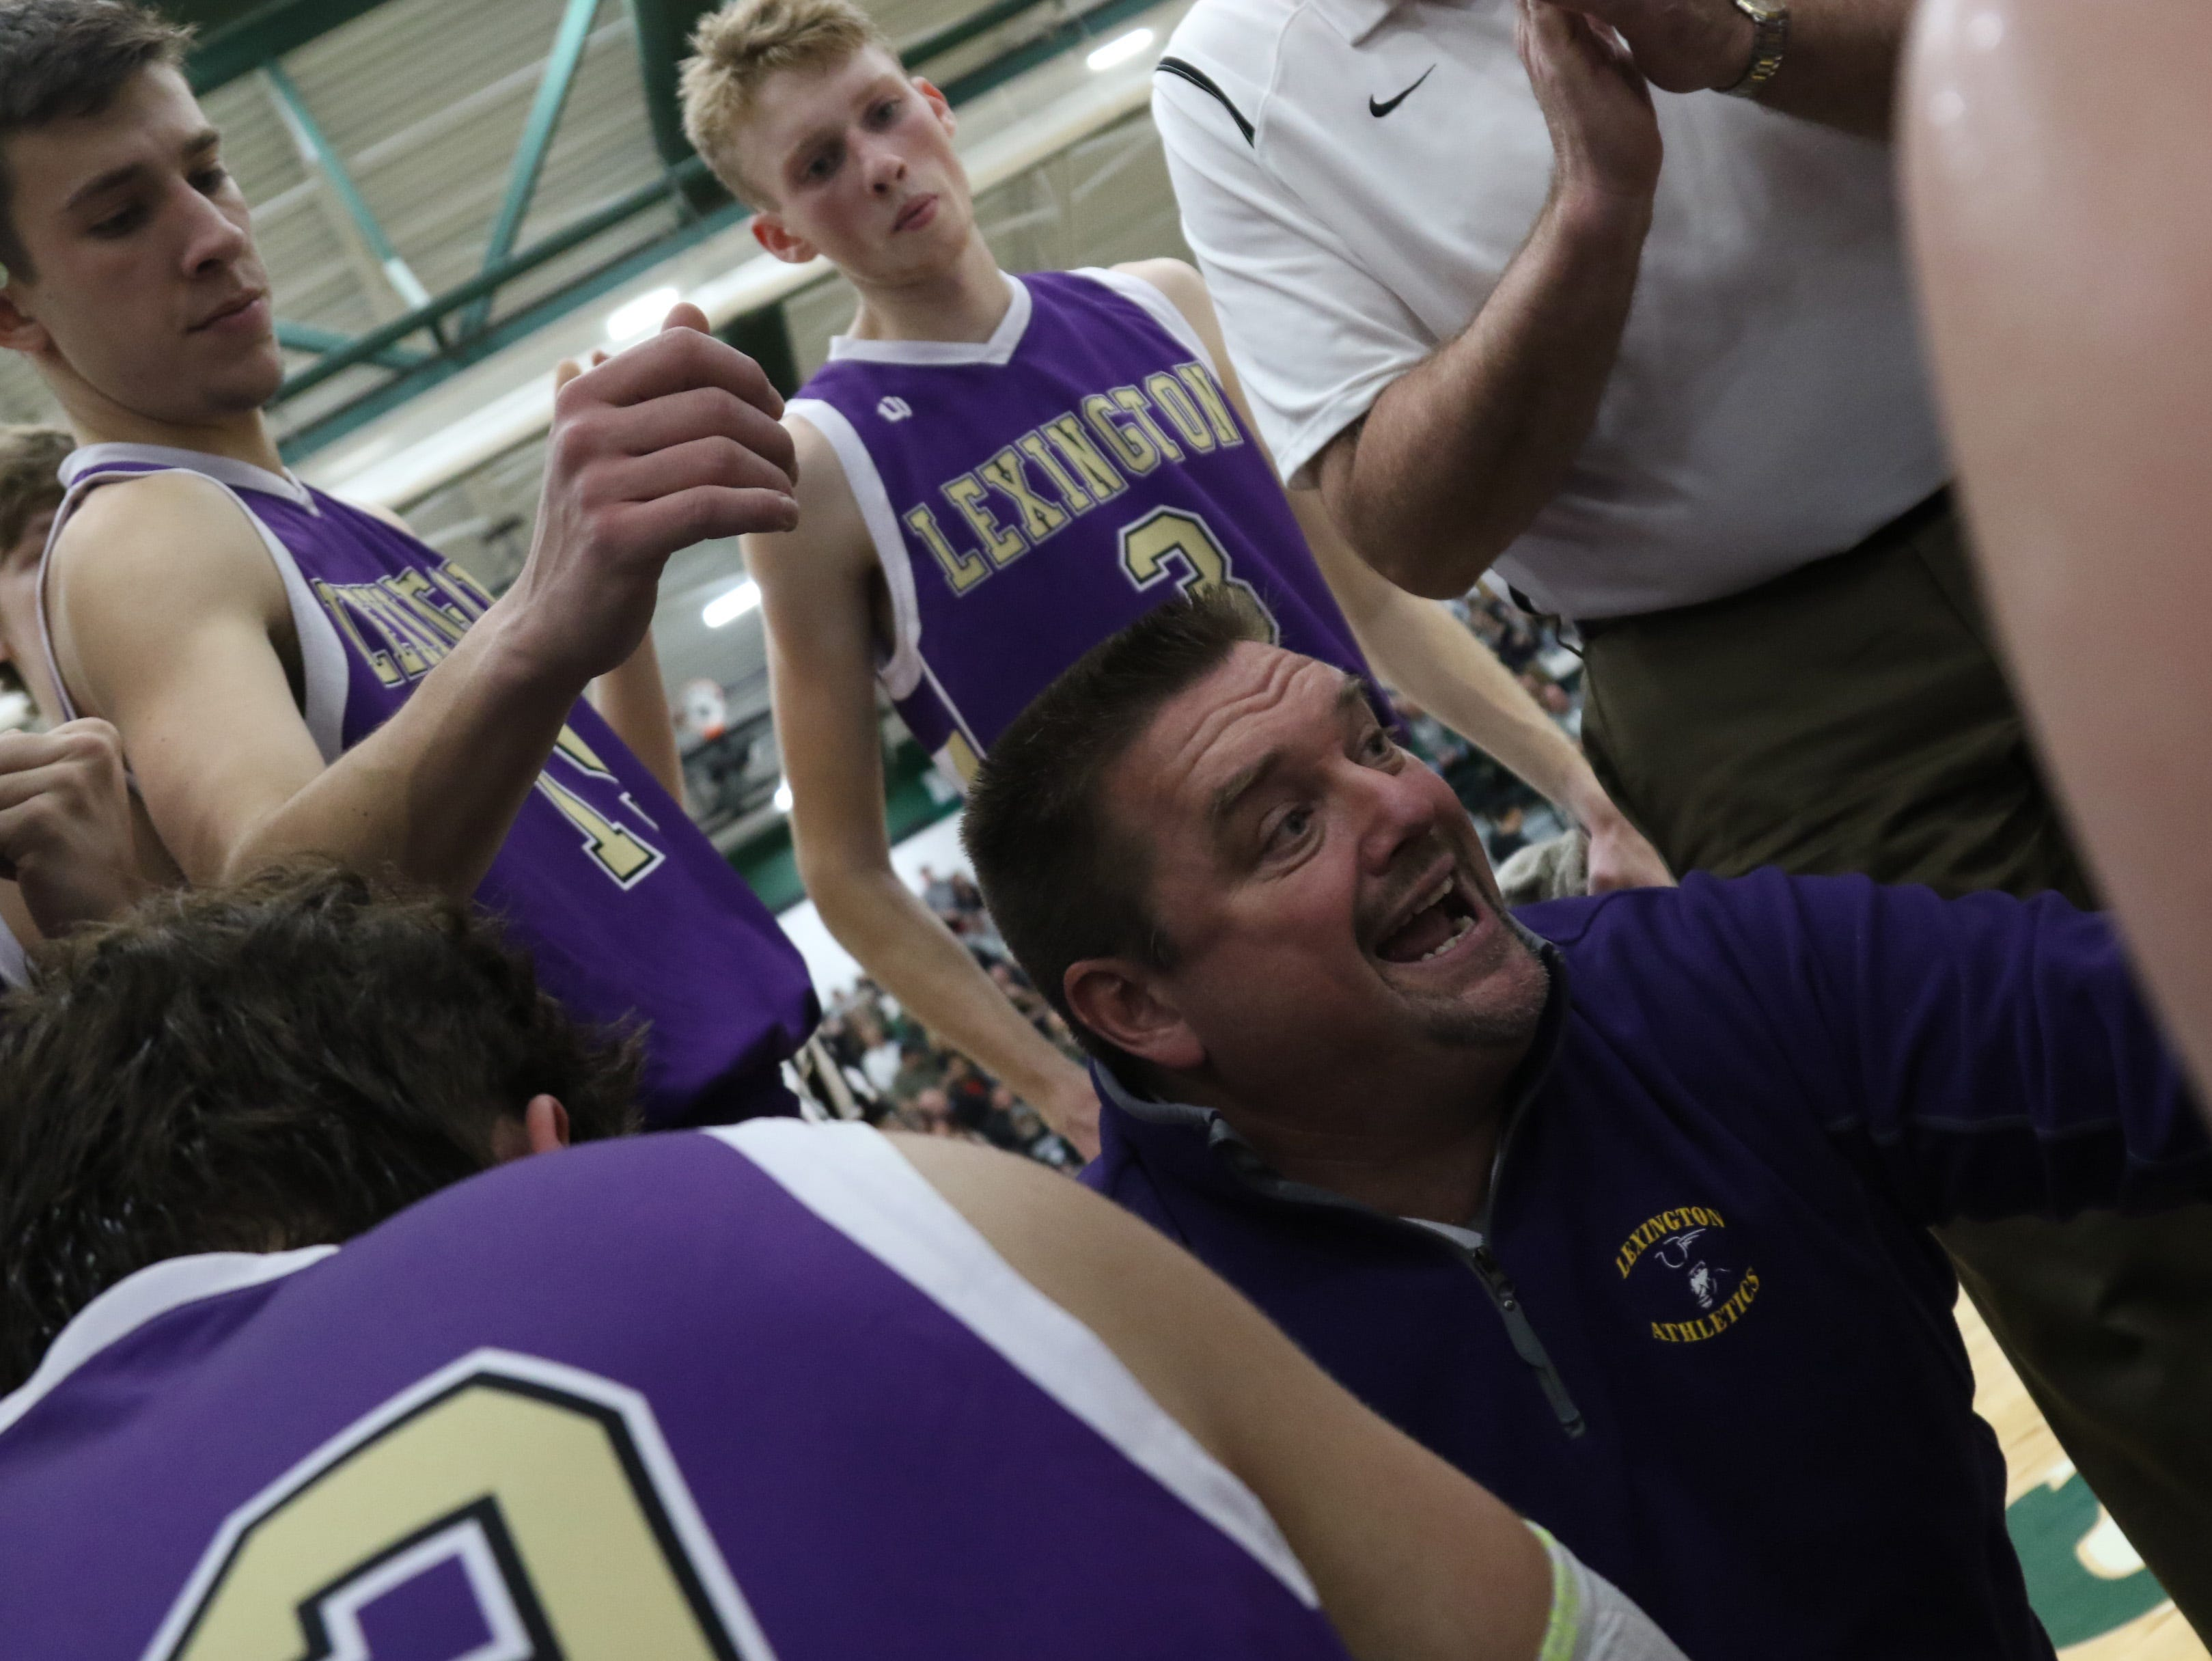 Lexington Boys Basketball coach Scott Hamilton talks to his players during a game at Madison on Friday.